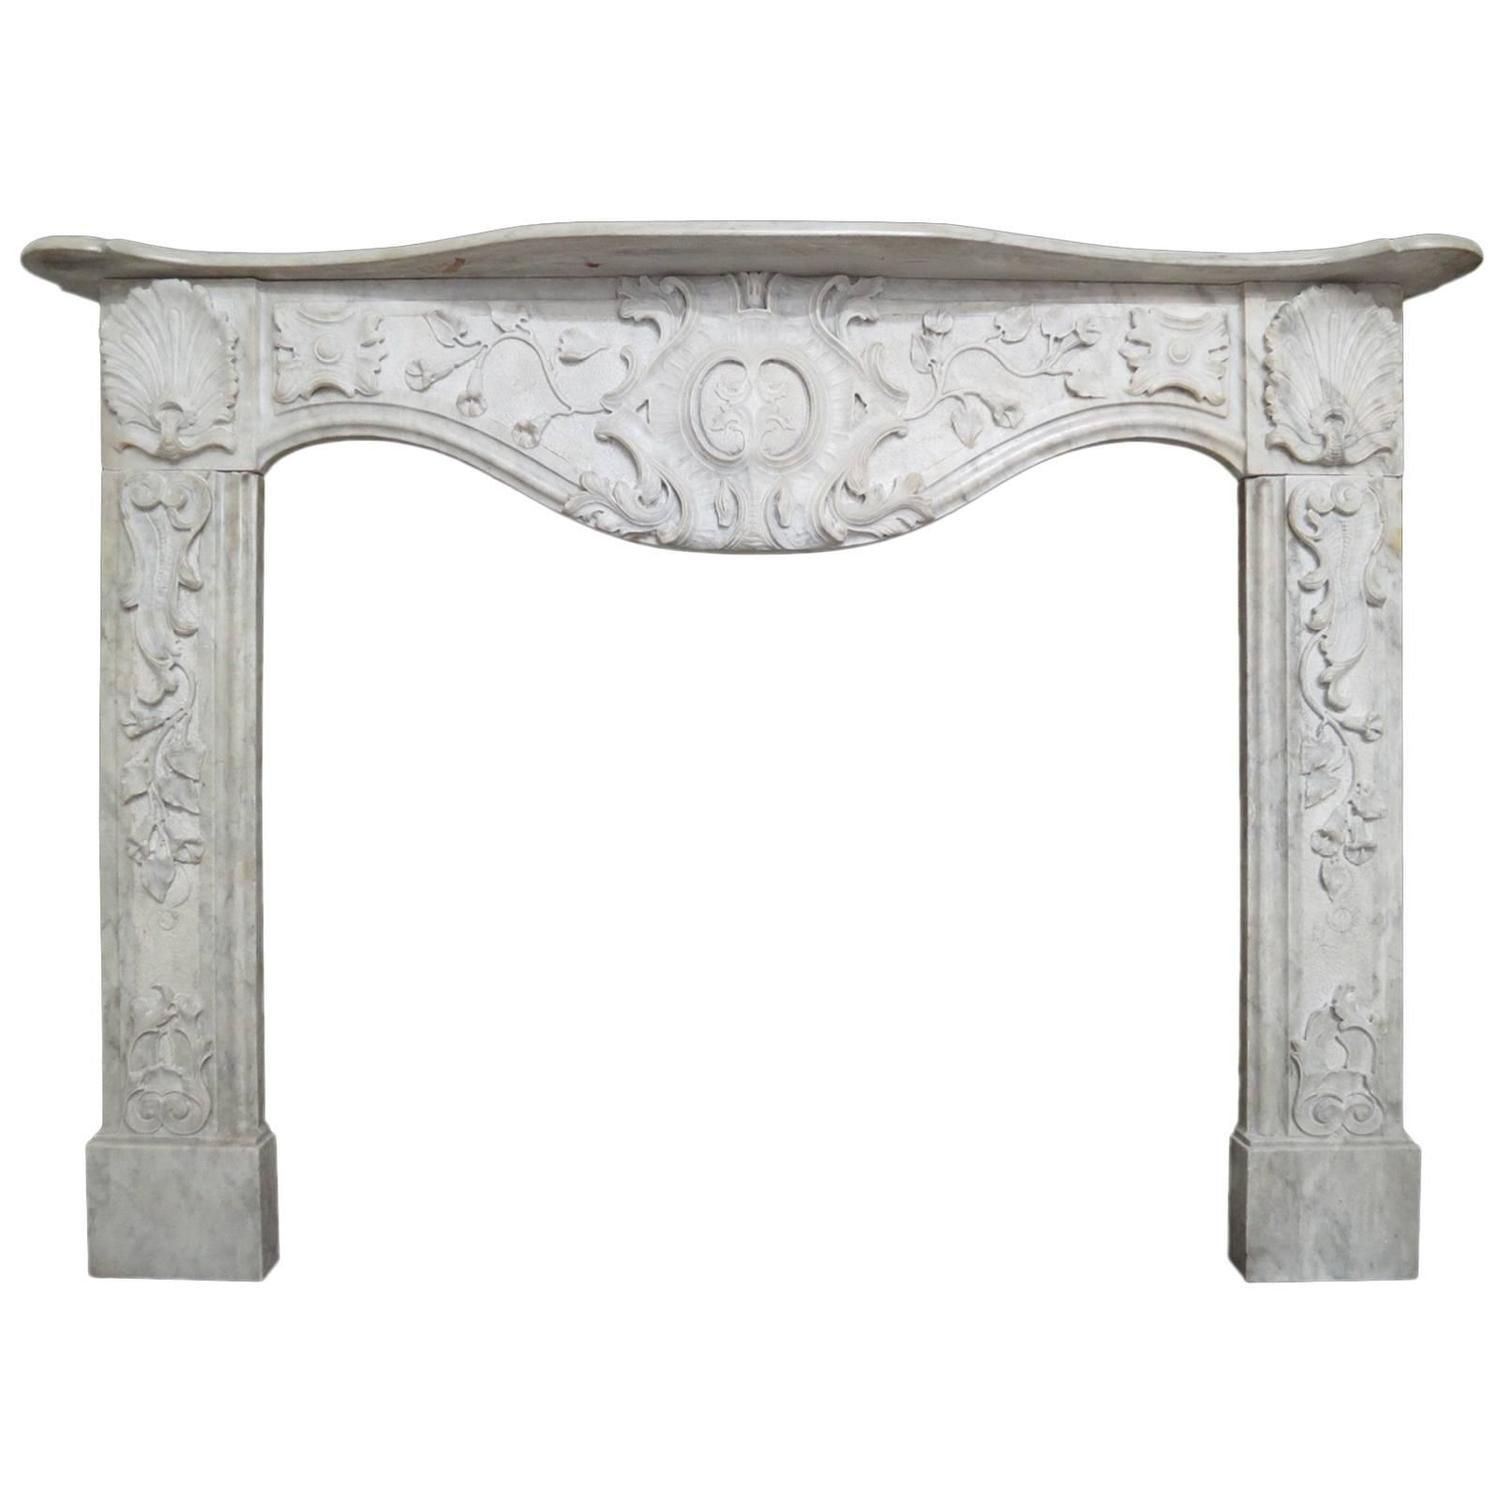 Late 18th Century Italian Fireplace Mantel In Carrara Marble Italian Fireplace Marble Fireplaces Italian Marble